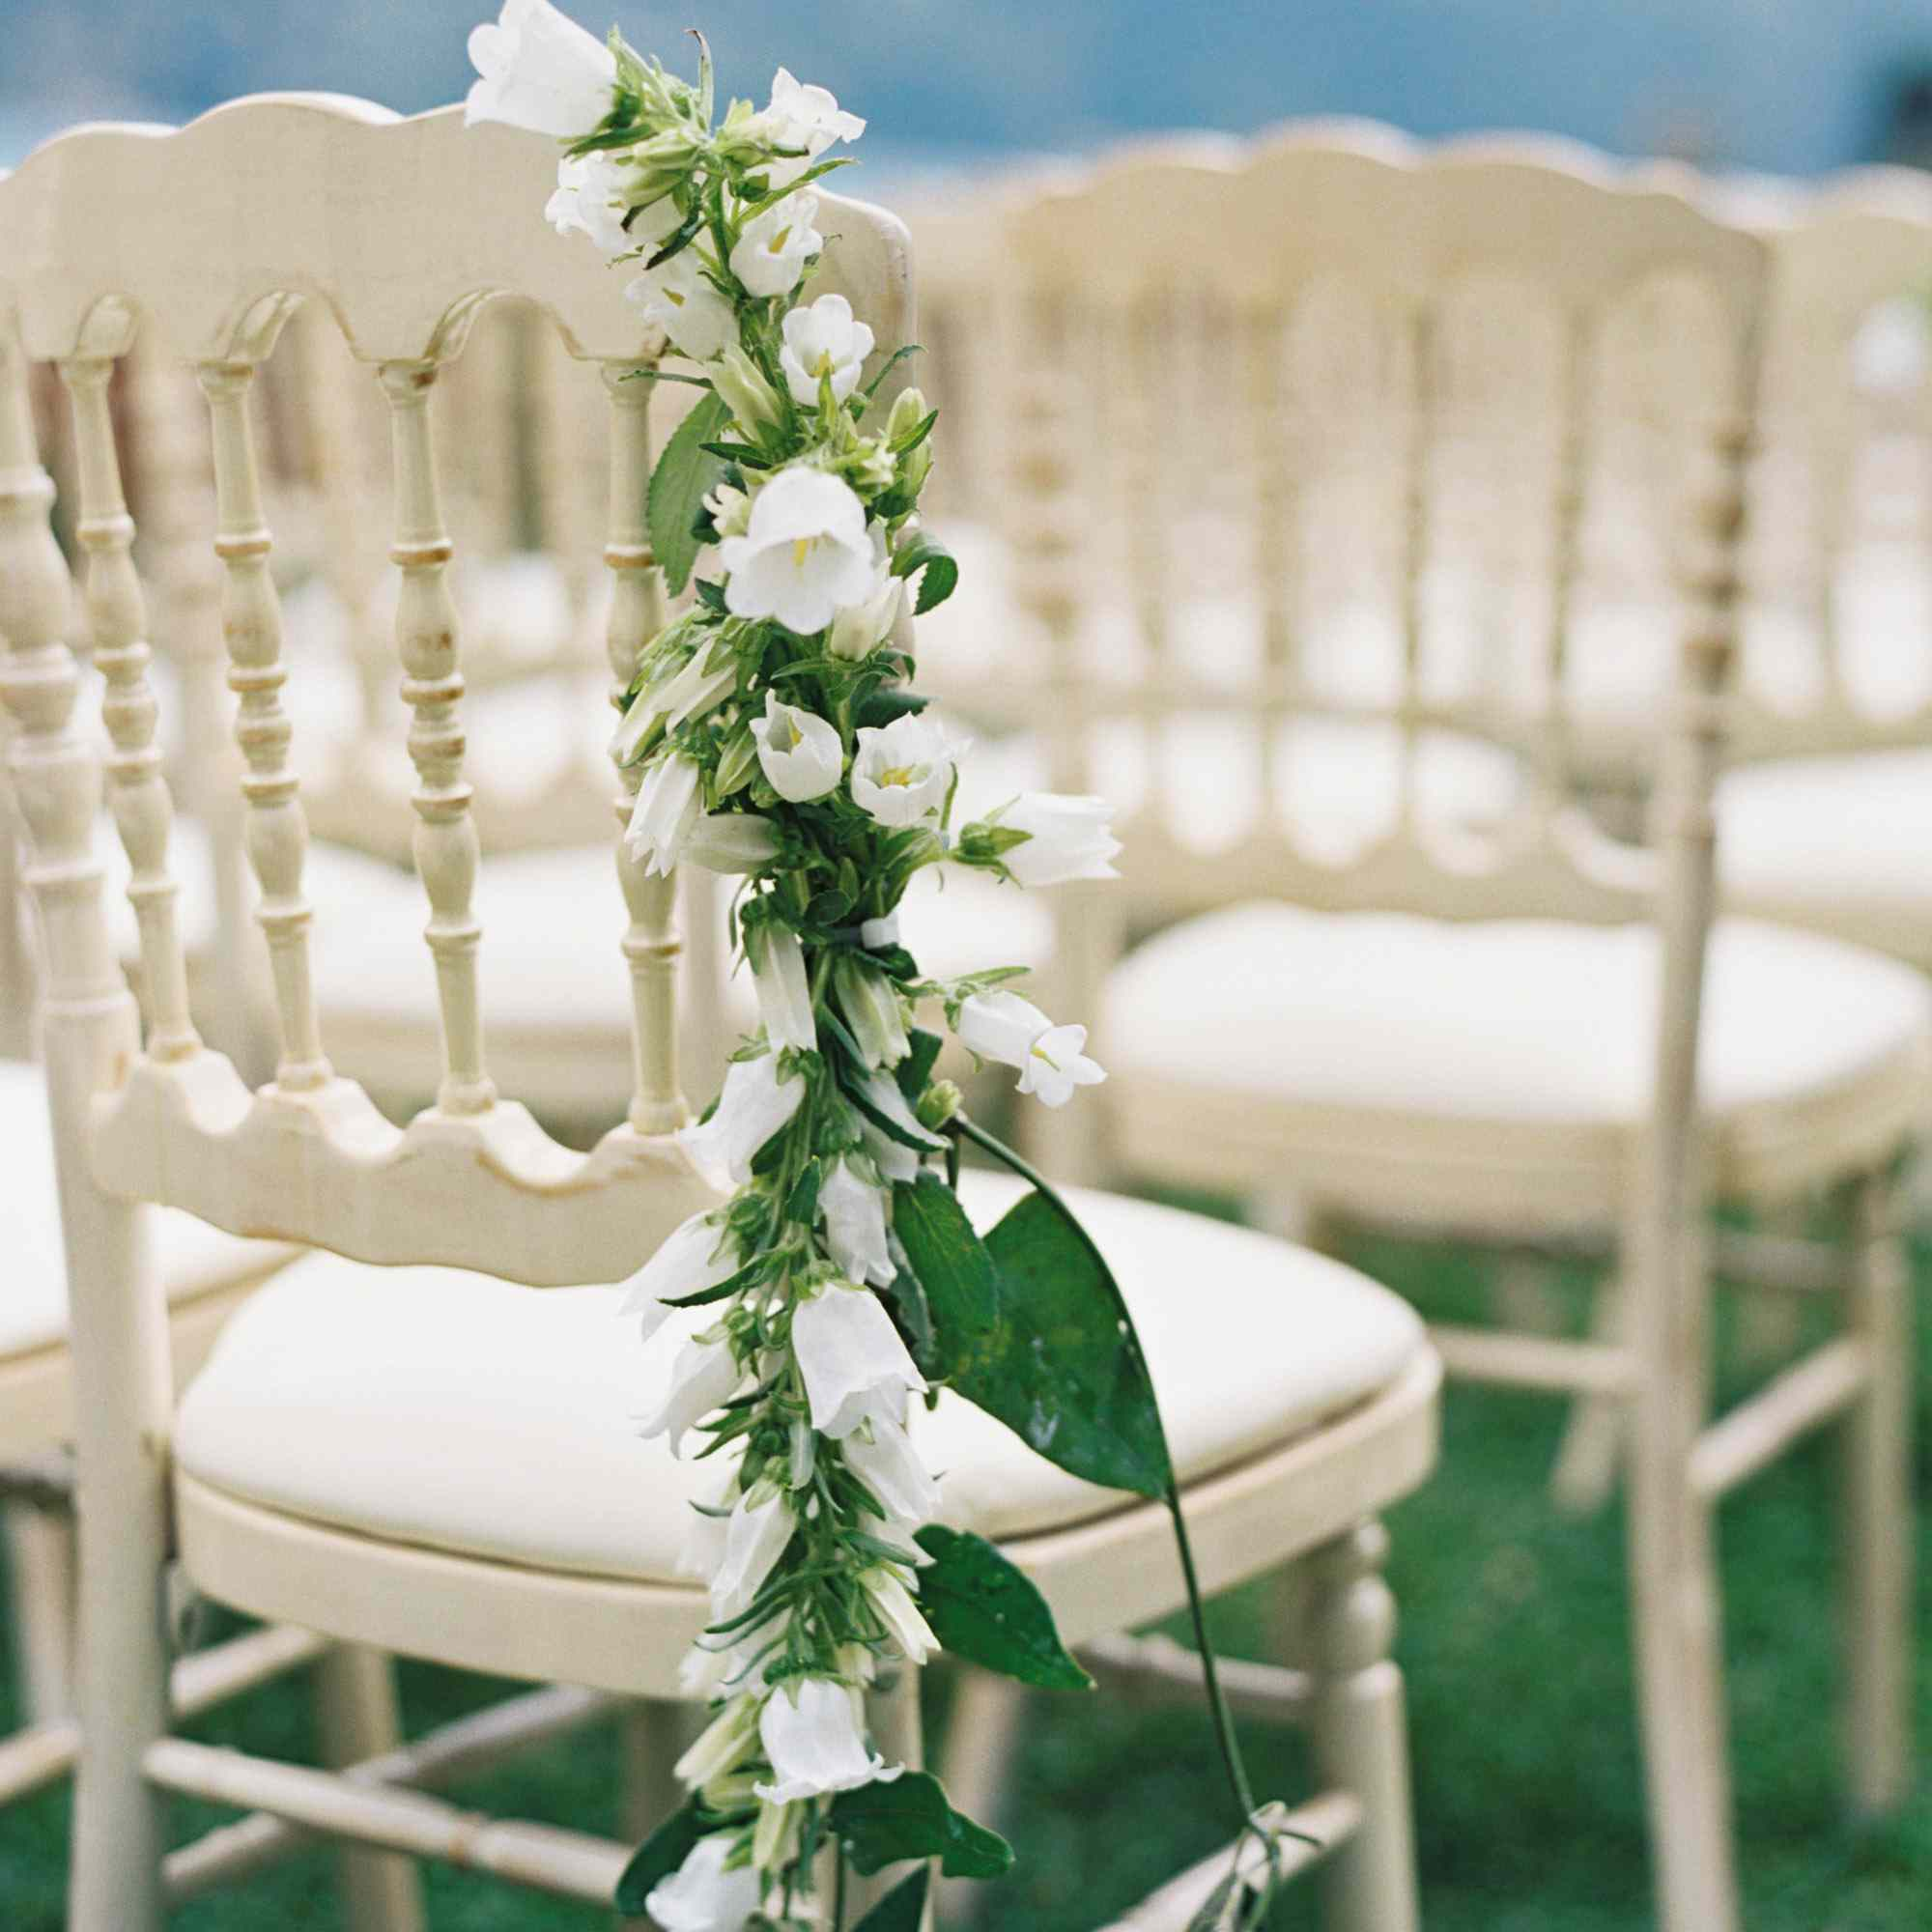 Garland over ceremony chair